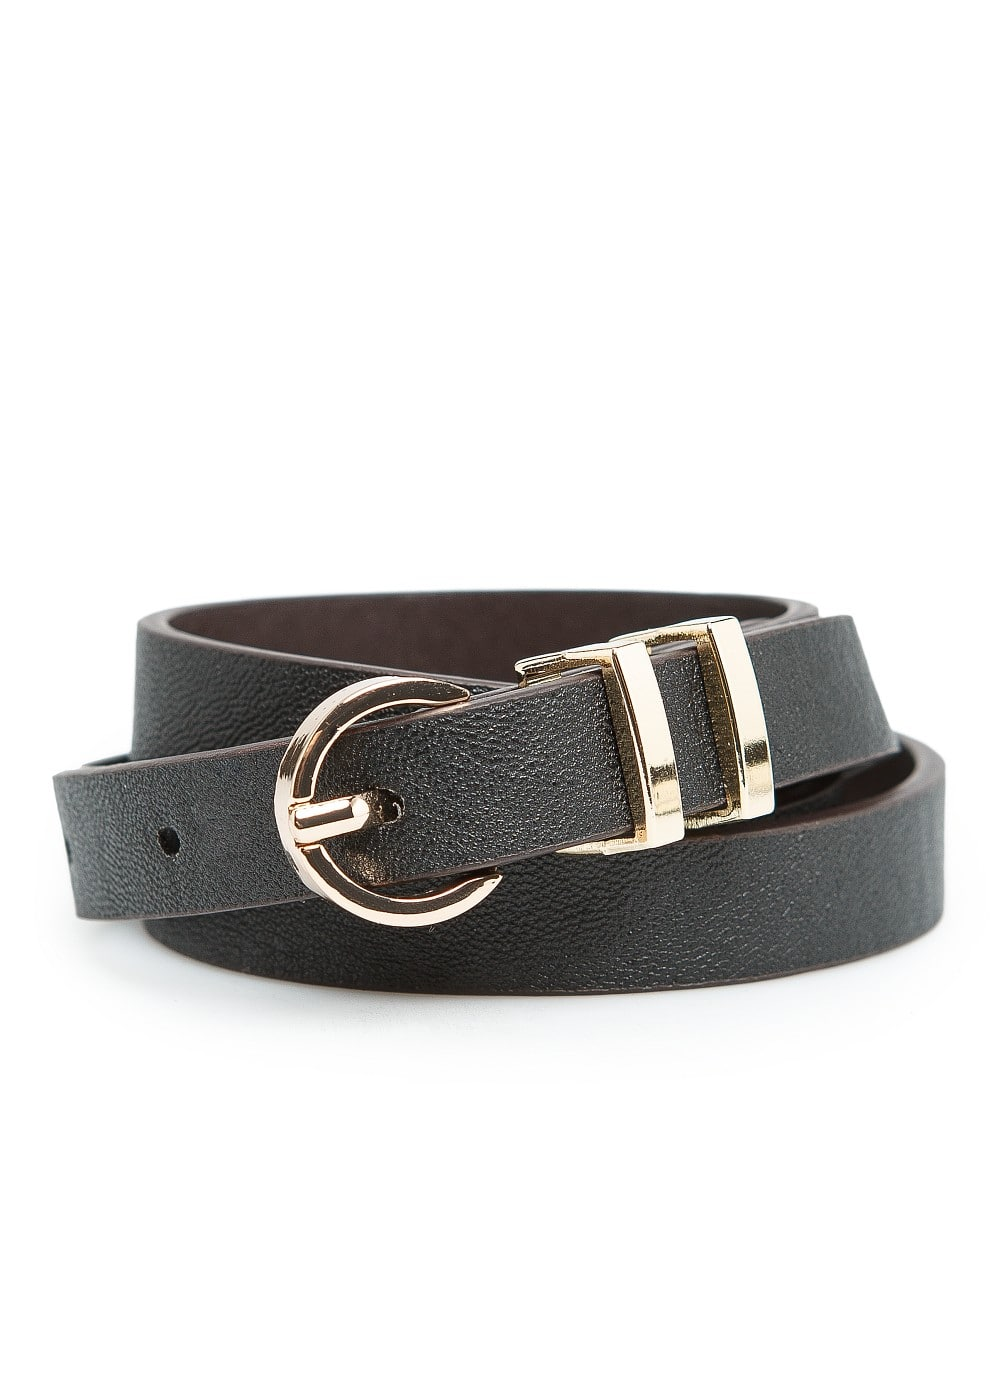 Double keeper skinny belt